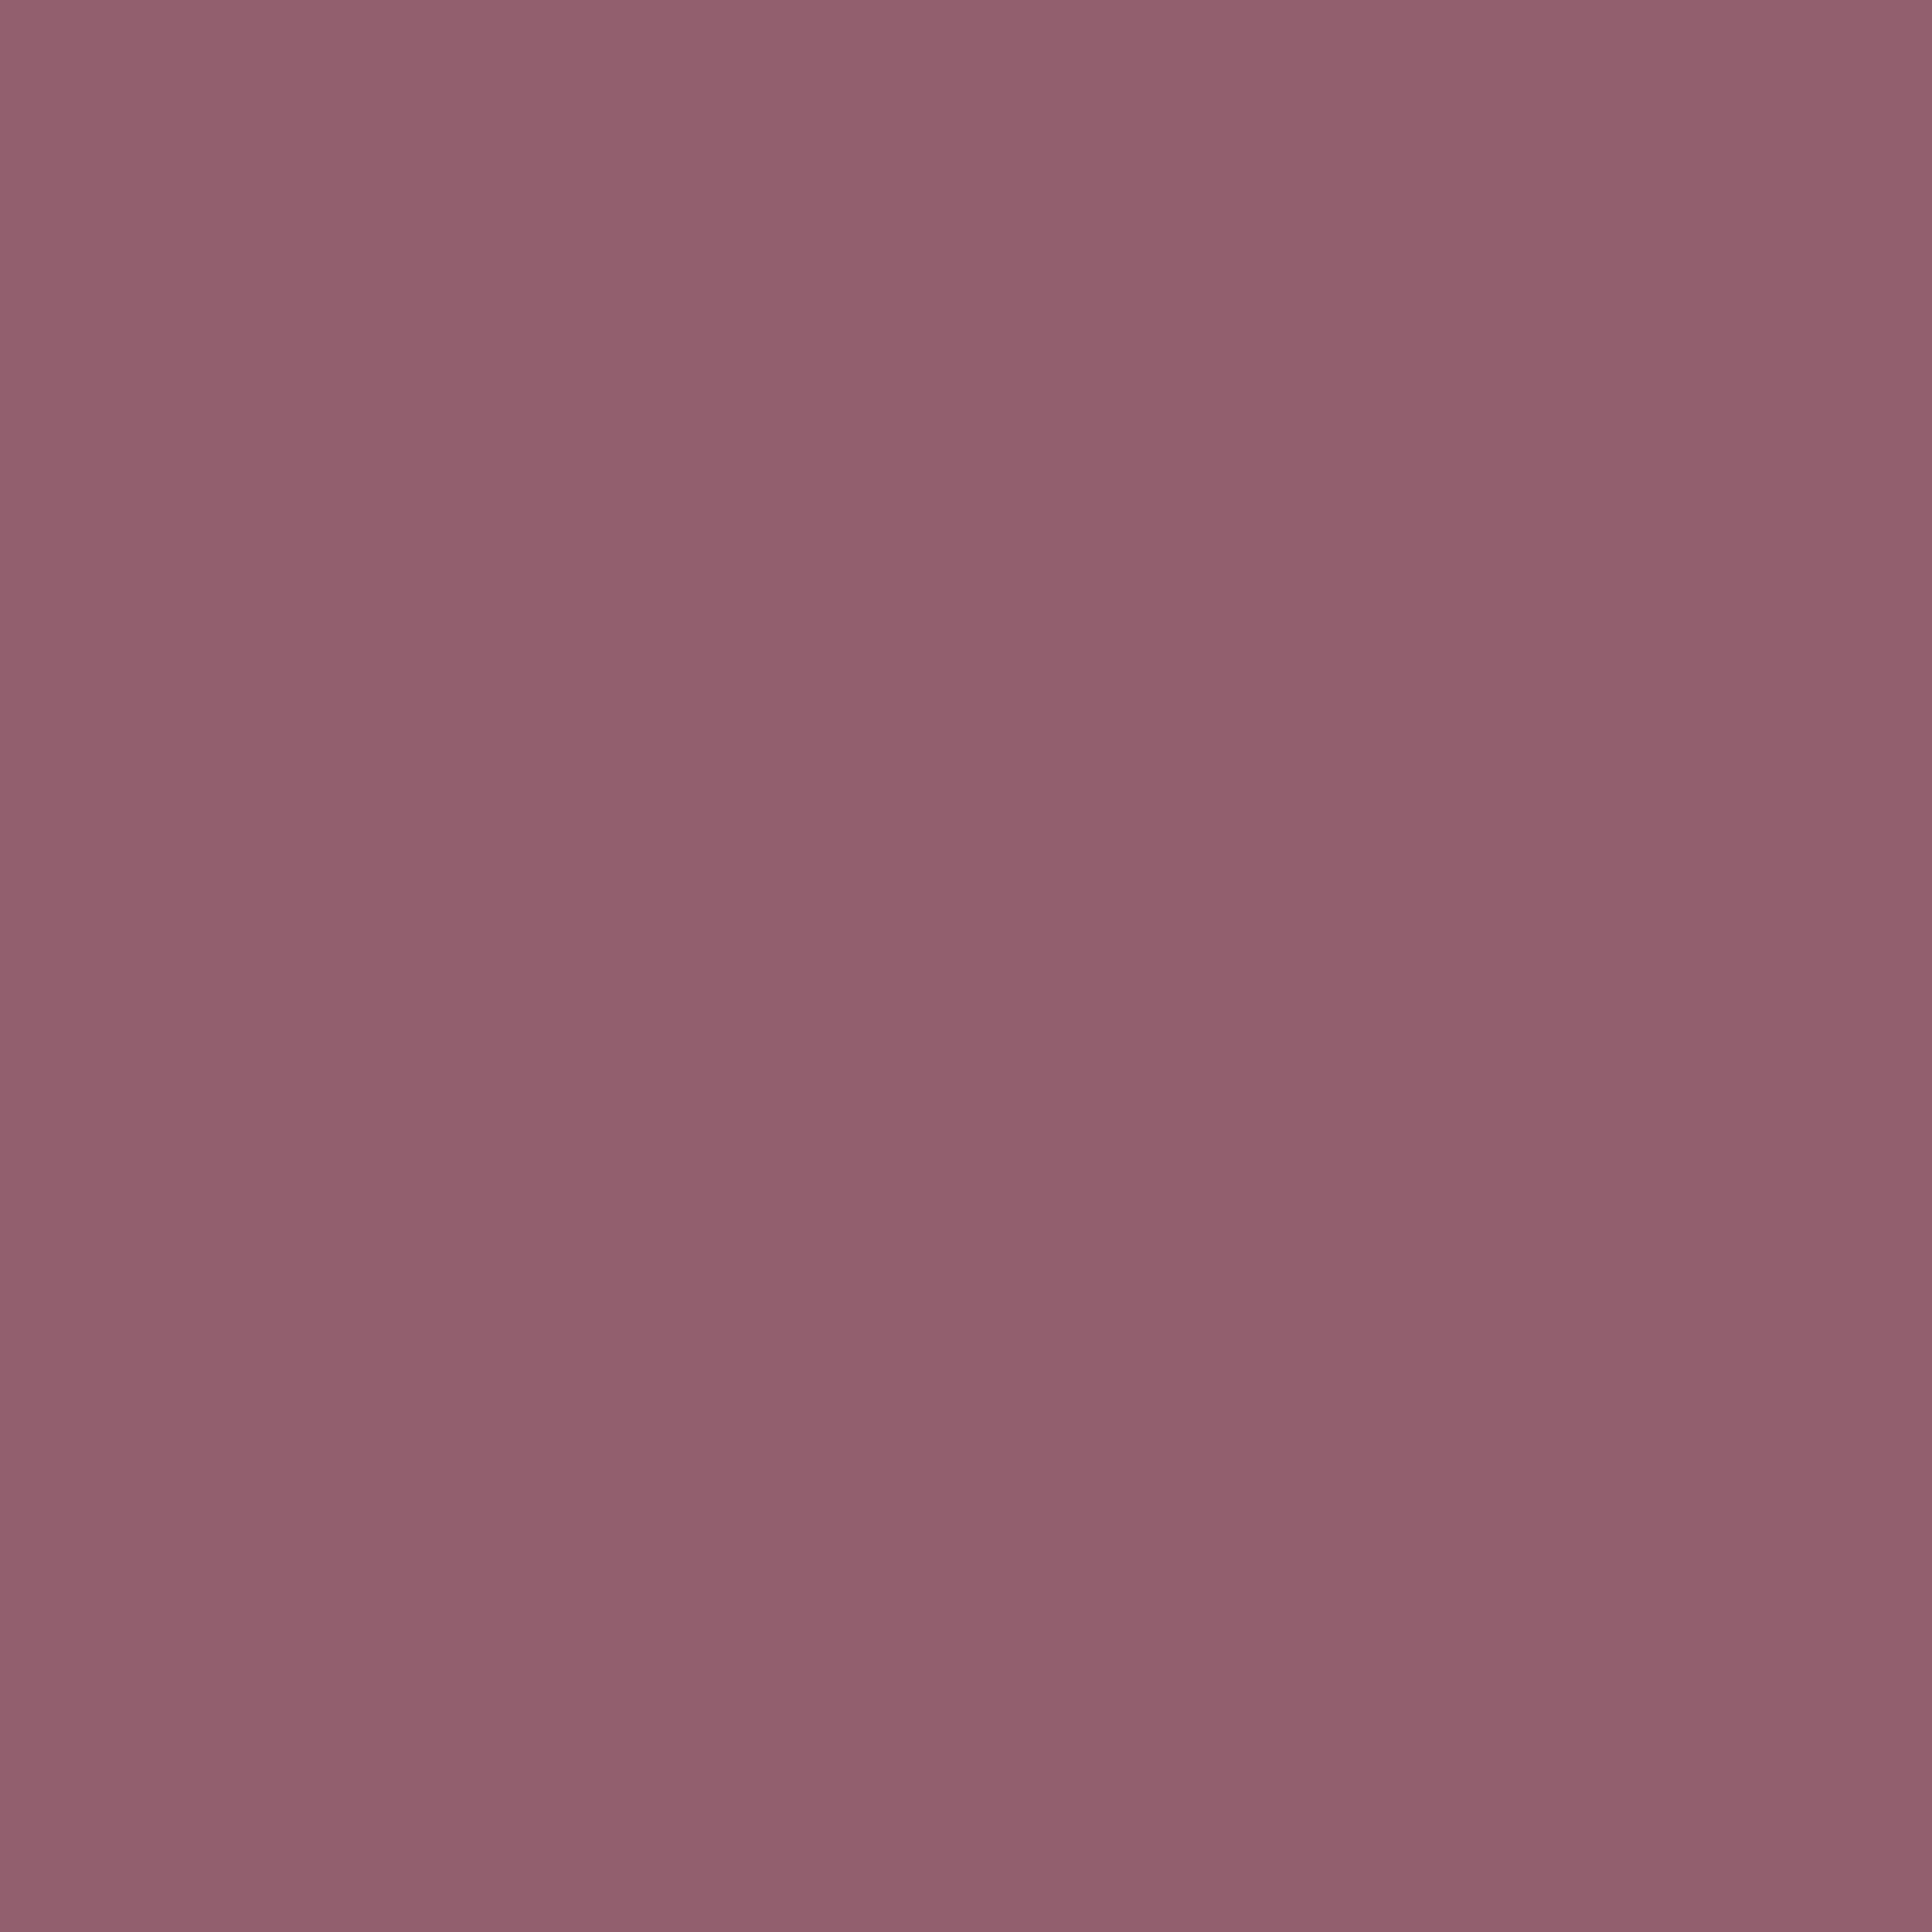 2732x2732 Mauve Taupe Solid Color Background